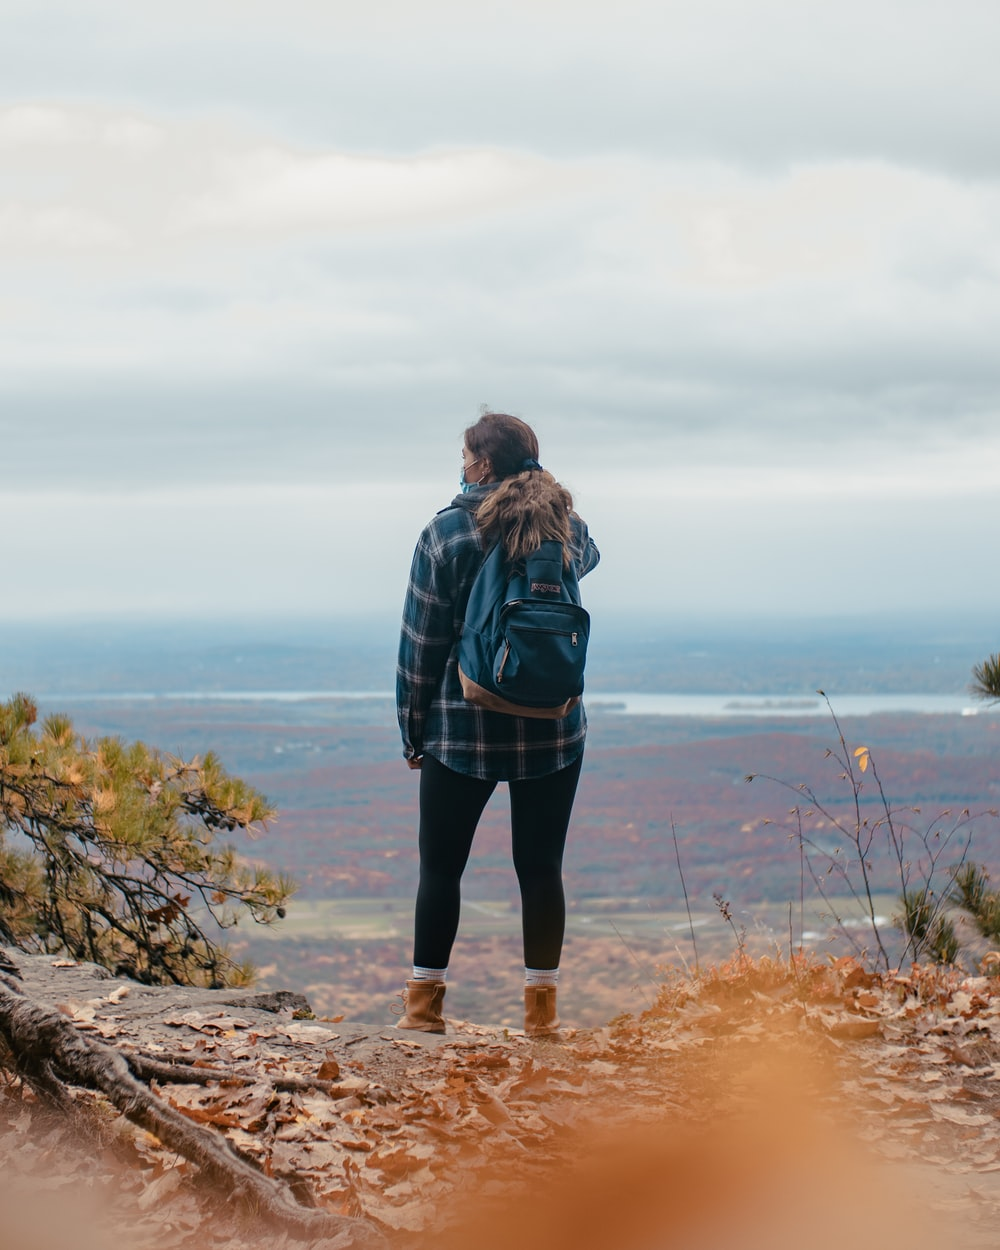 woman in black and gray plaid coat standing on rock formation near body of water during